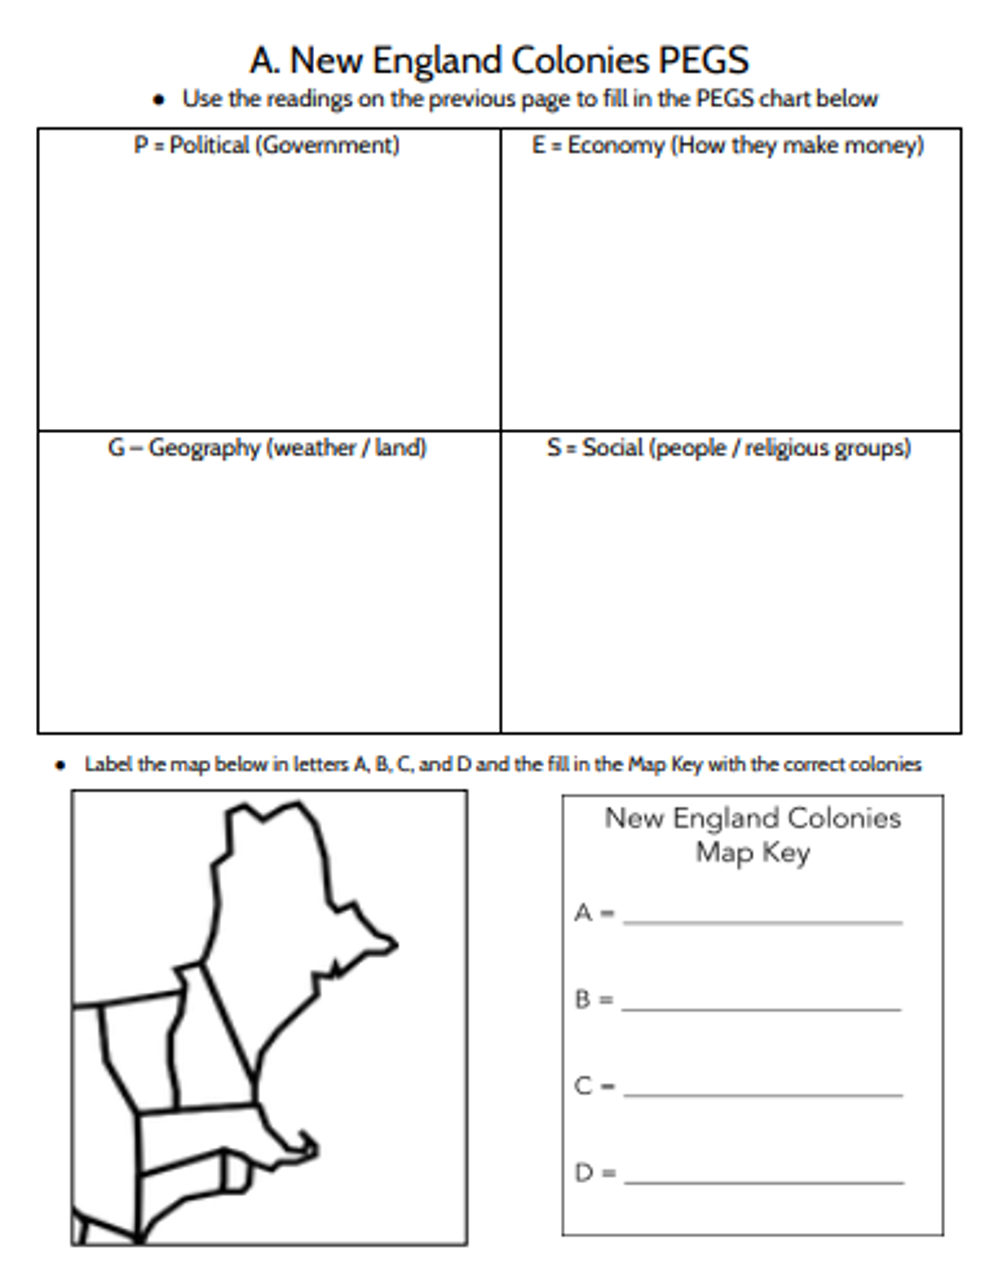 13 English Colonies PEGS Activity